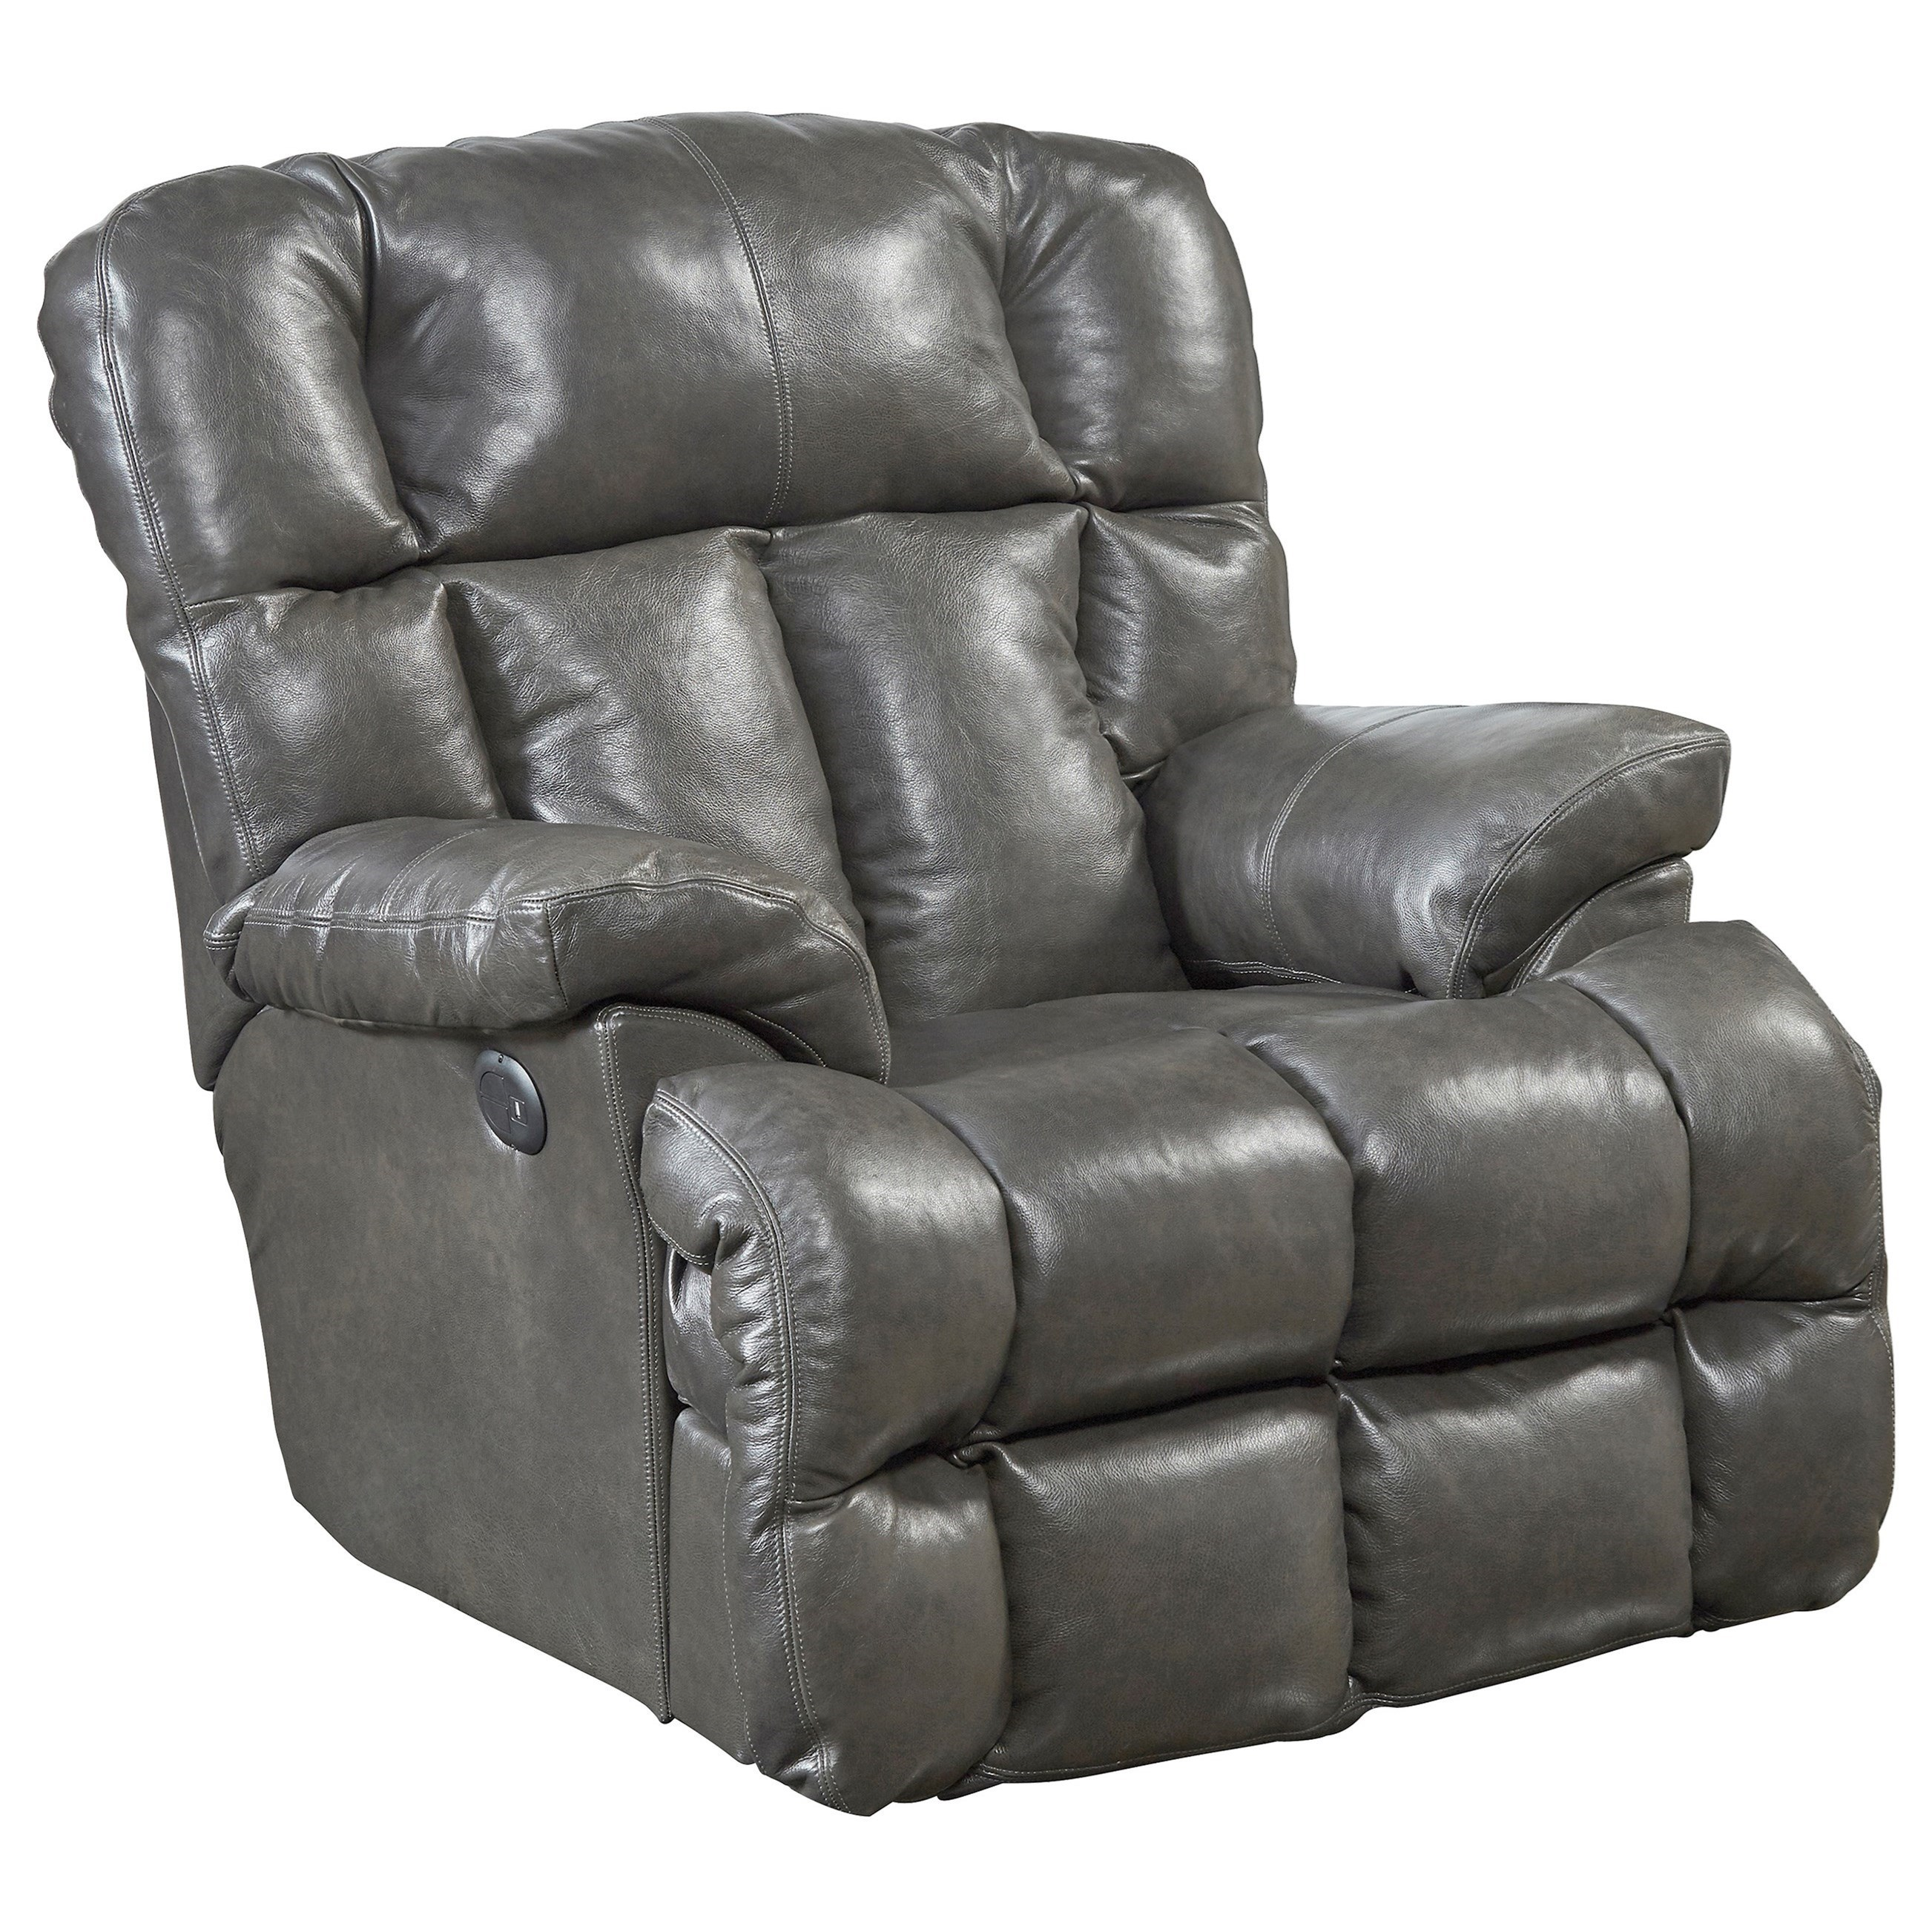 lay flat recliner chairs ergonomic chair for si joint pain catnapper motion and recliners victor power reclinersvictor